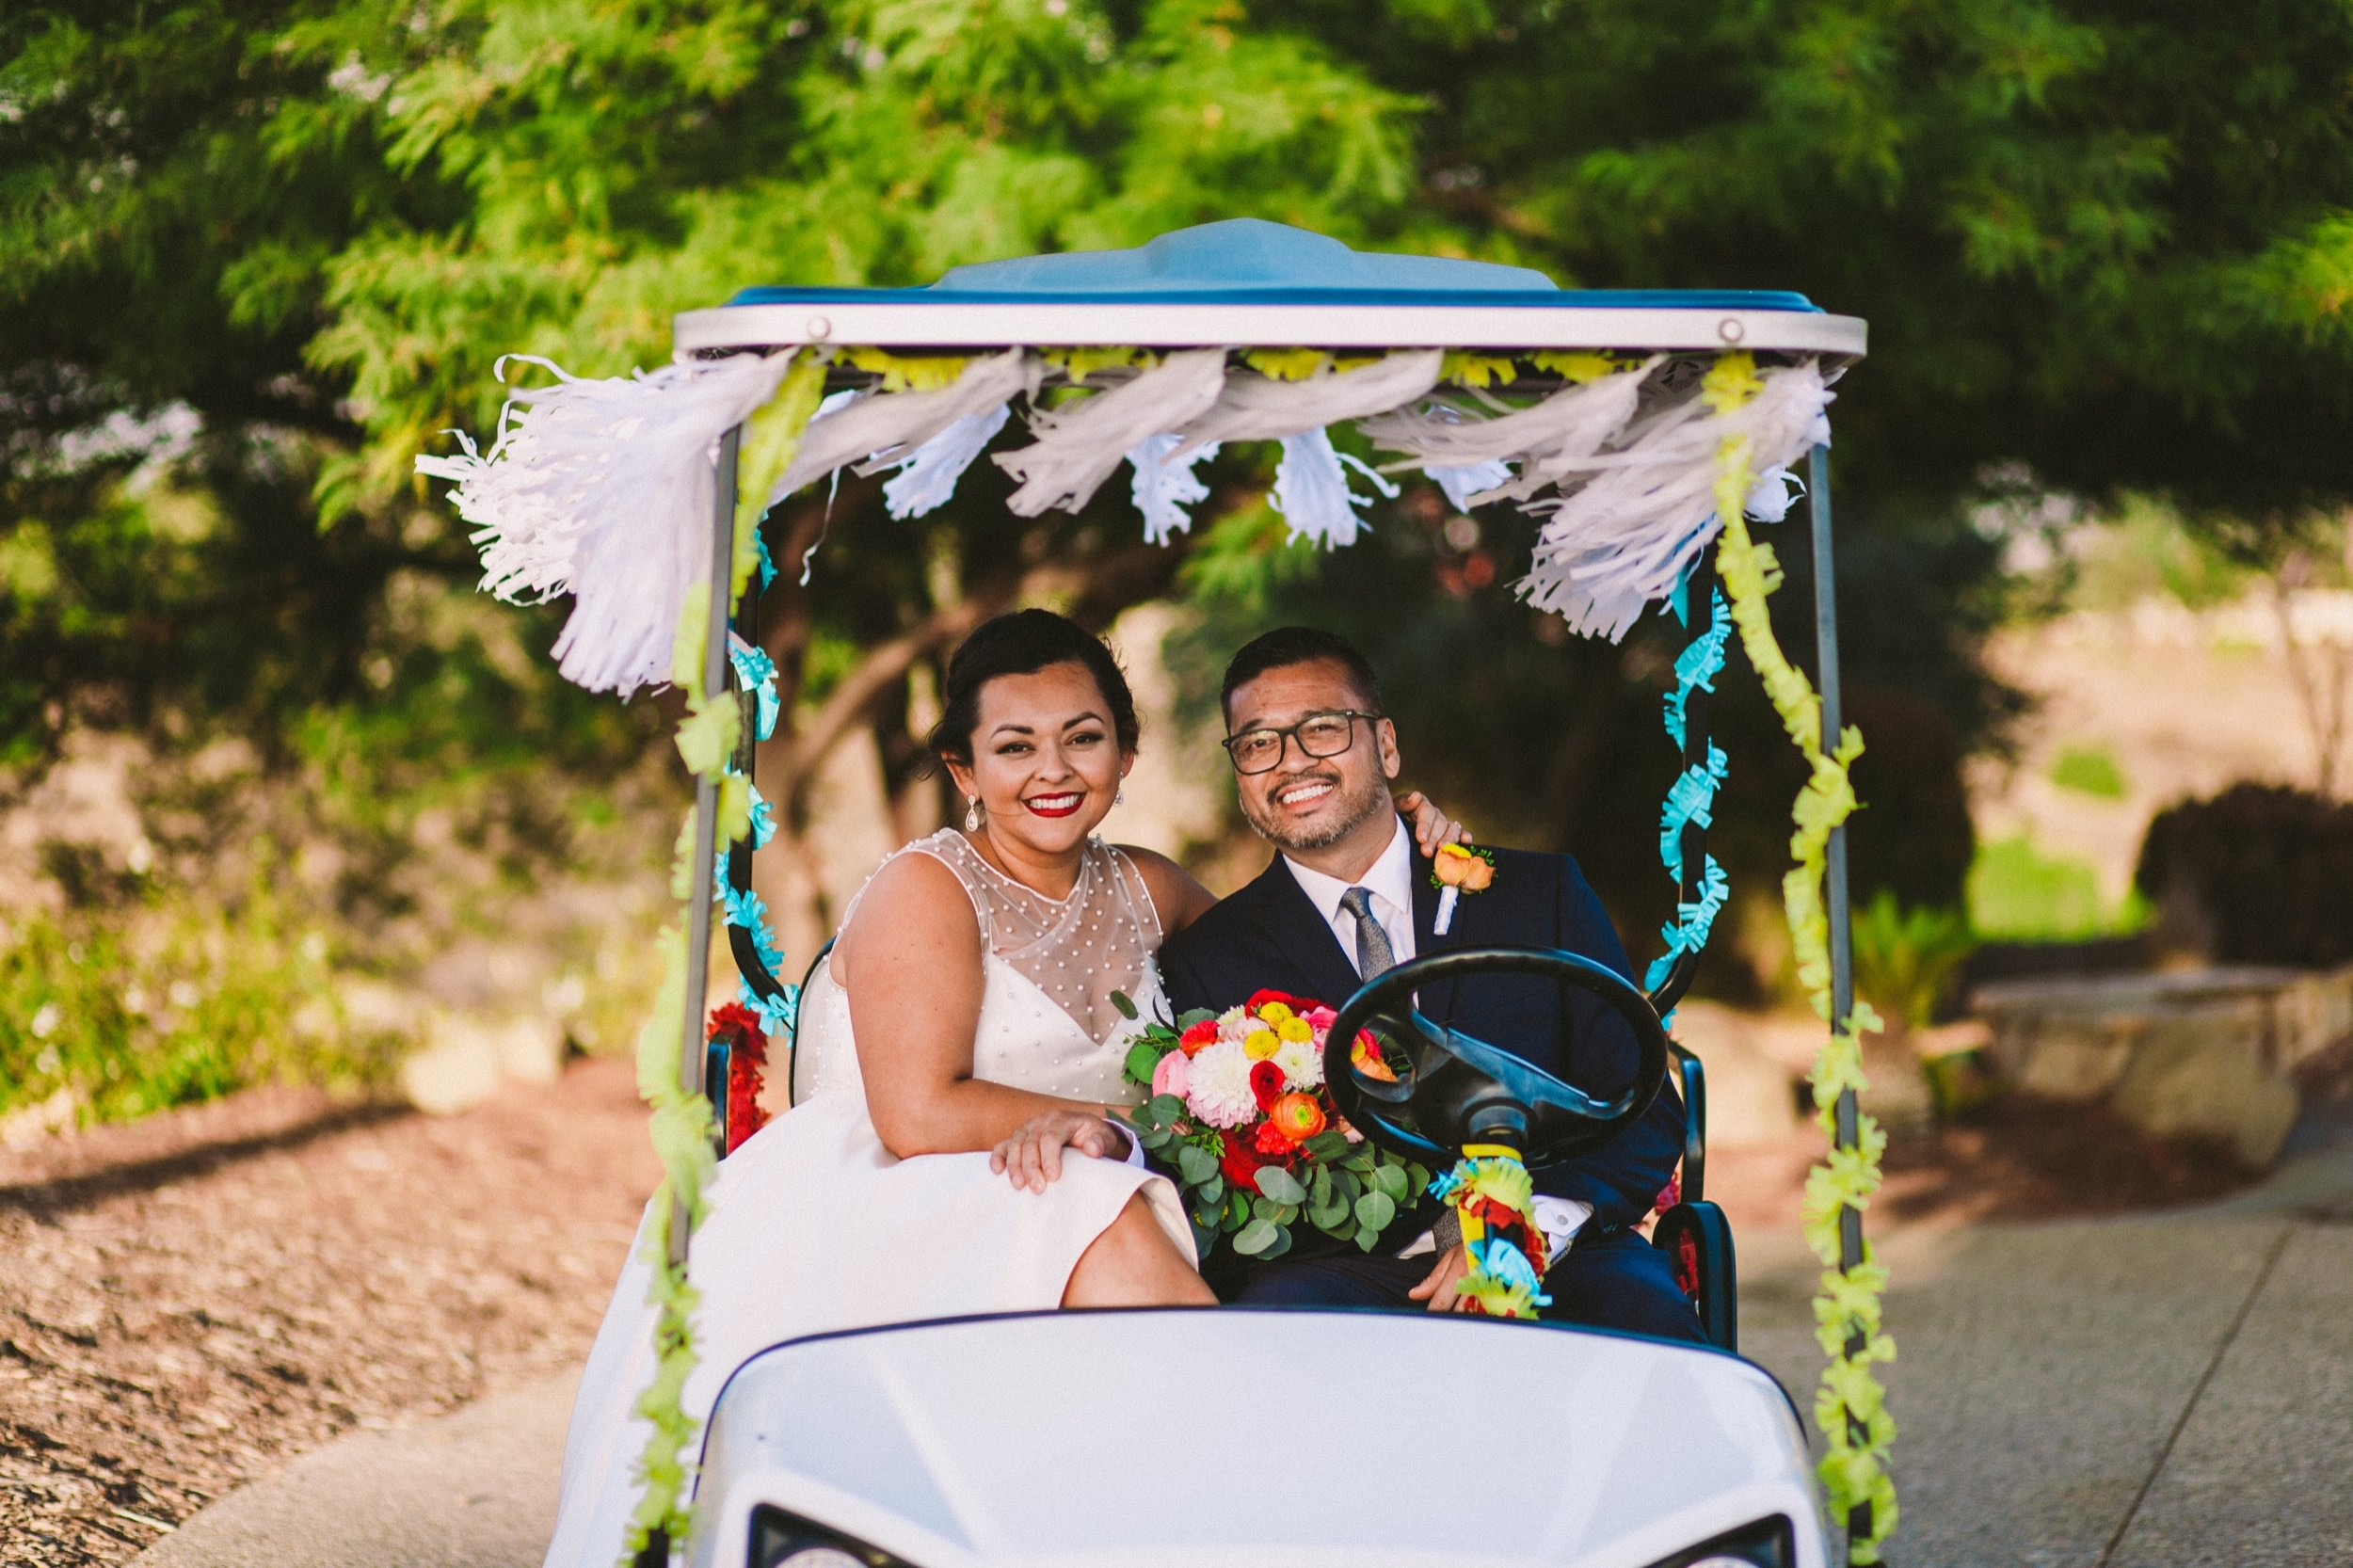 Intimate & colorful Temecula Documentary Wedding Photography-79.jpg